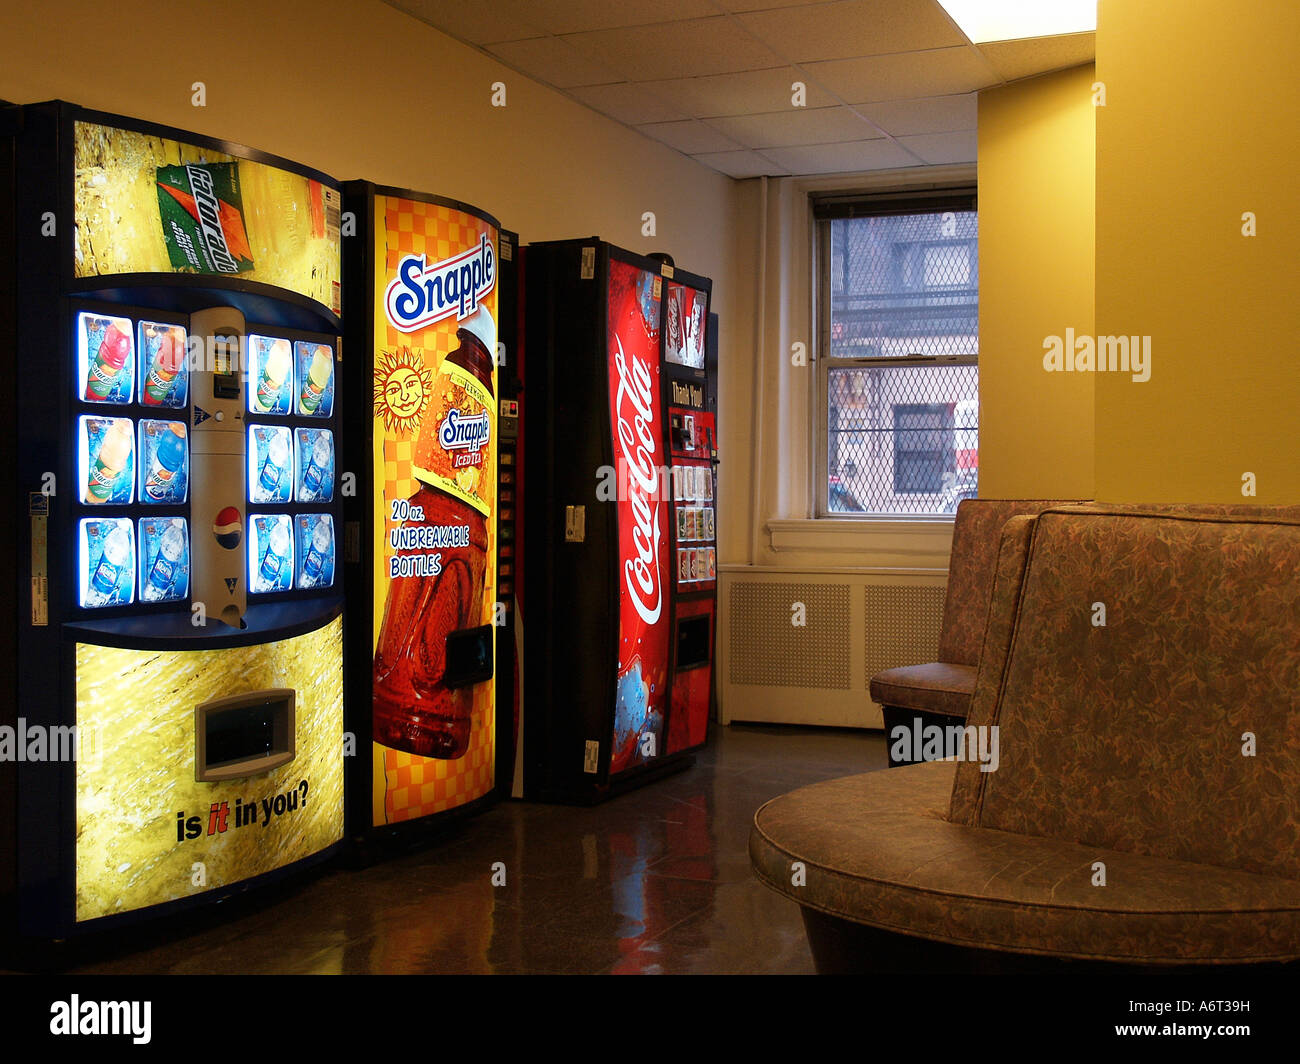 Pepsi Vending Machine Stock Photos Amp Pepsi Vending Machine